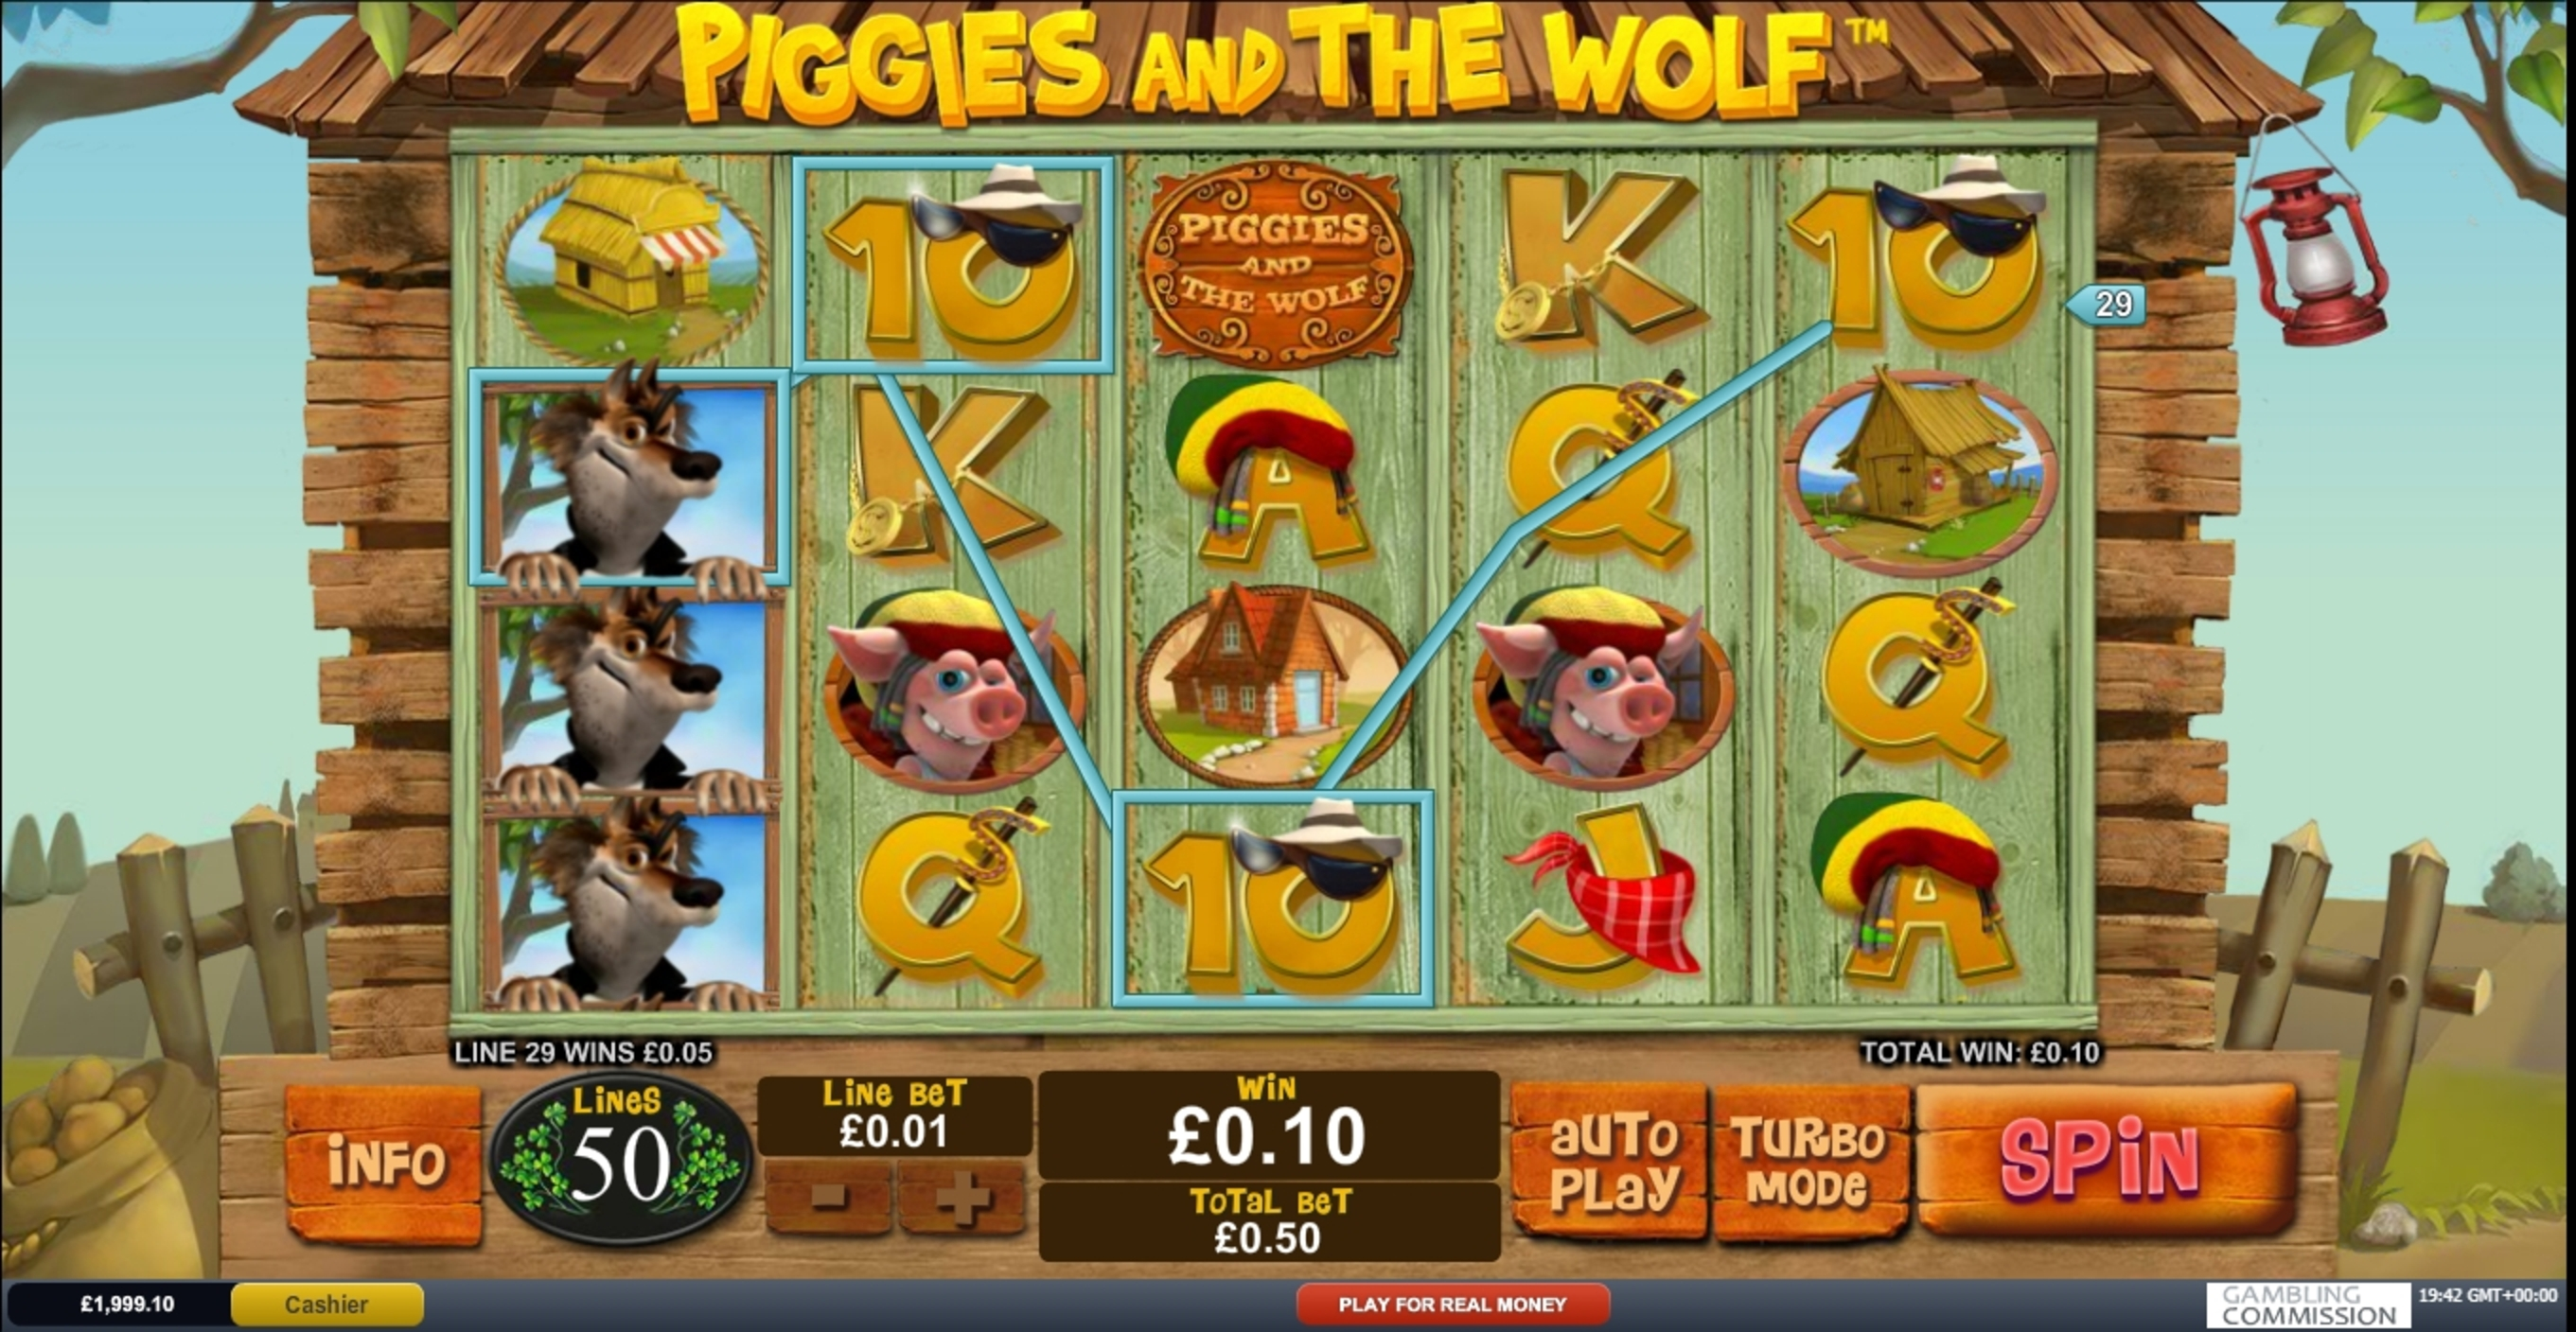 Win Money in Piggies and The Wolf Free Slot Game by Playtech